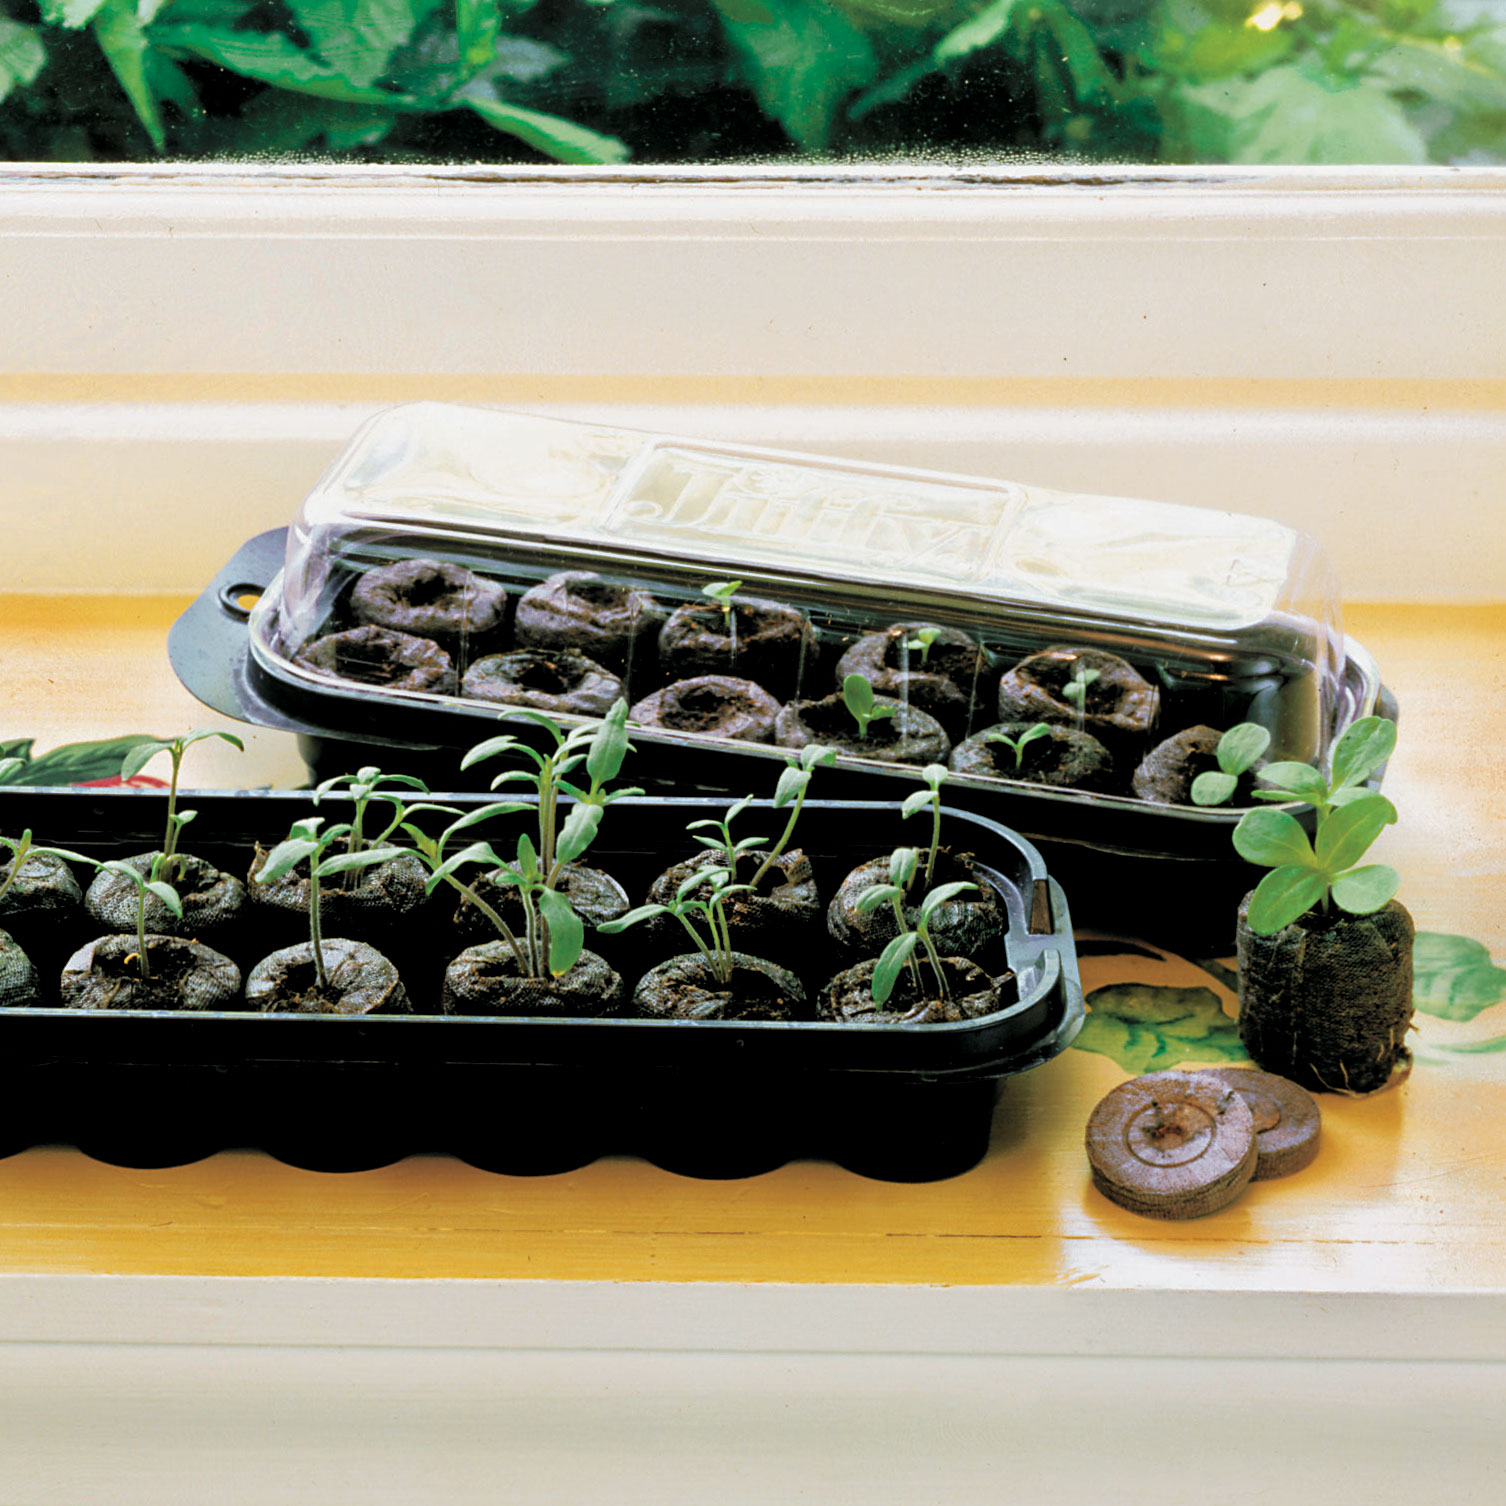 Jiffy 7 Windowsill Greenhouse ...